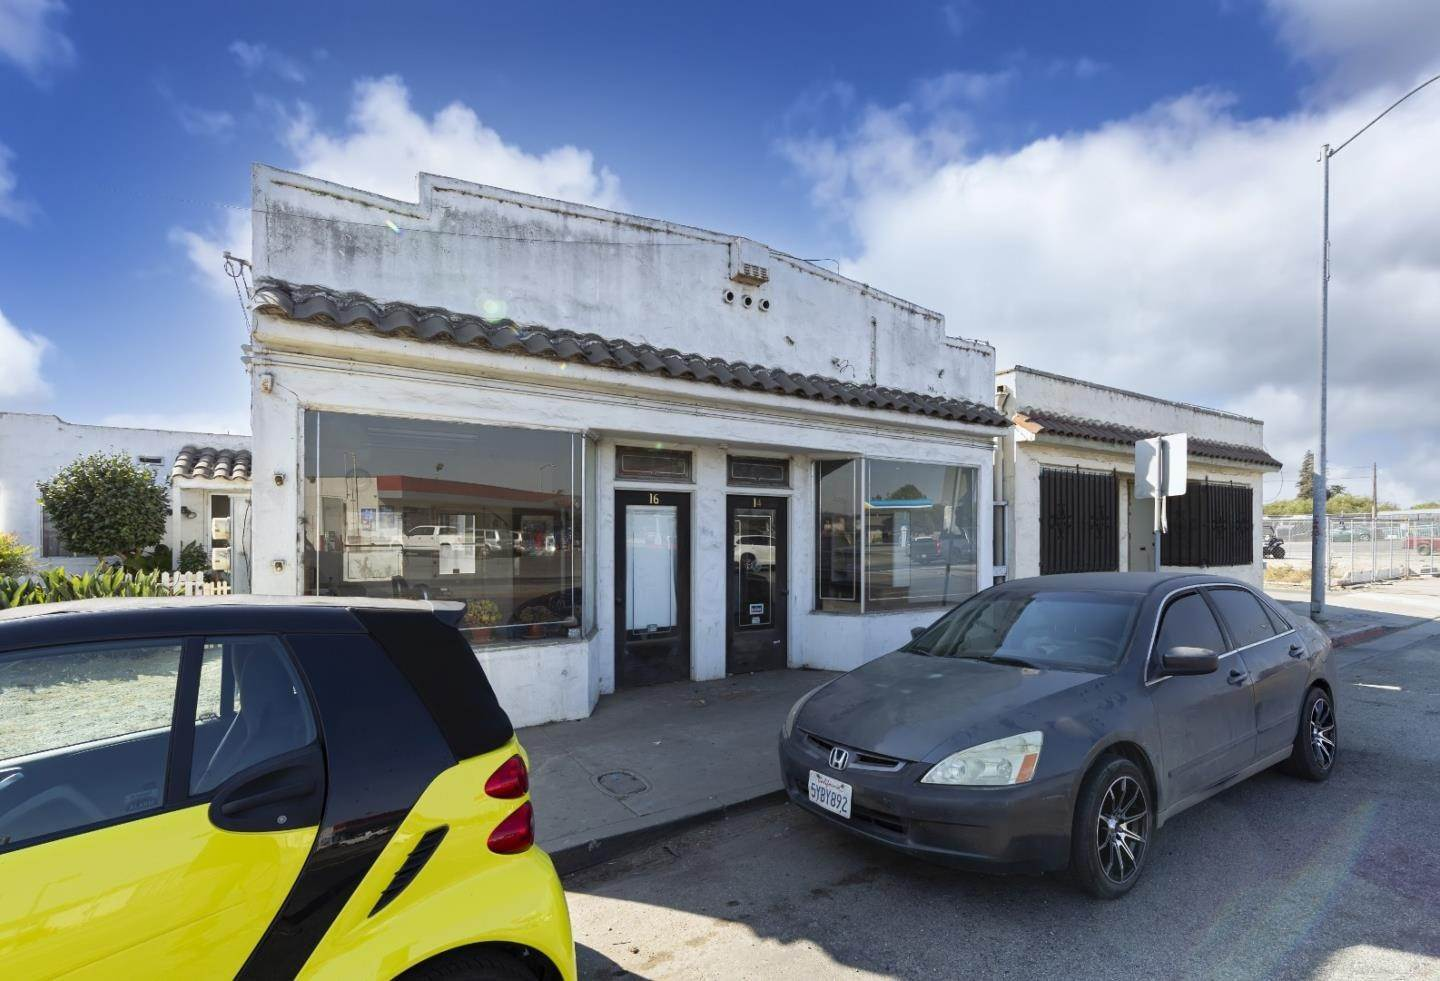 Commercial for Sale at 14 & 16 Porter Drive Royal Oaks, California 95076 United States